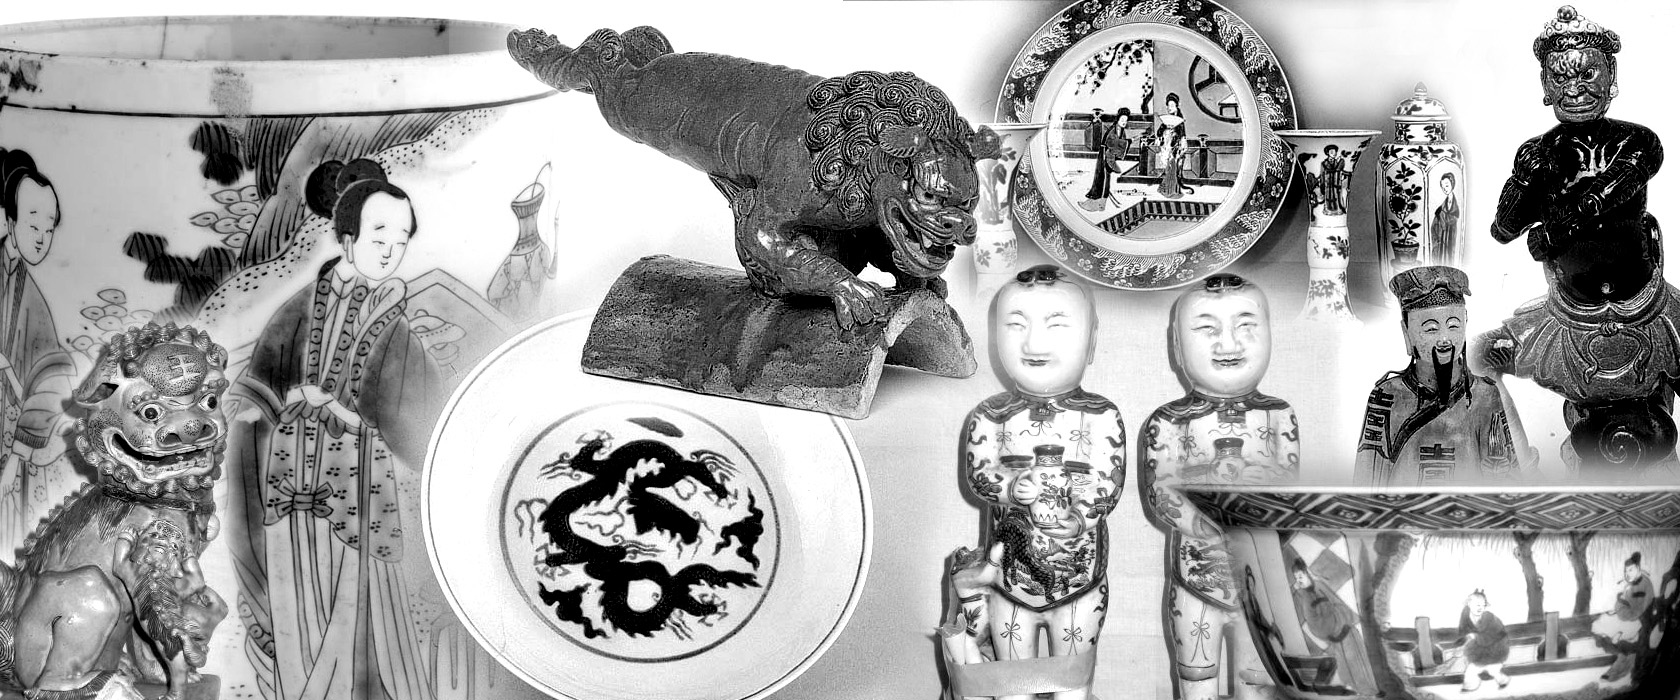 CARP: Chinese Art - Research into Provenance